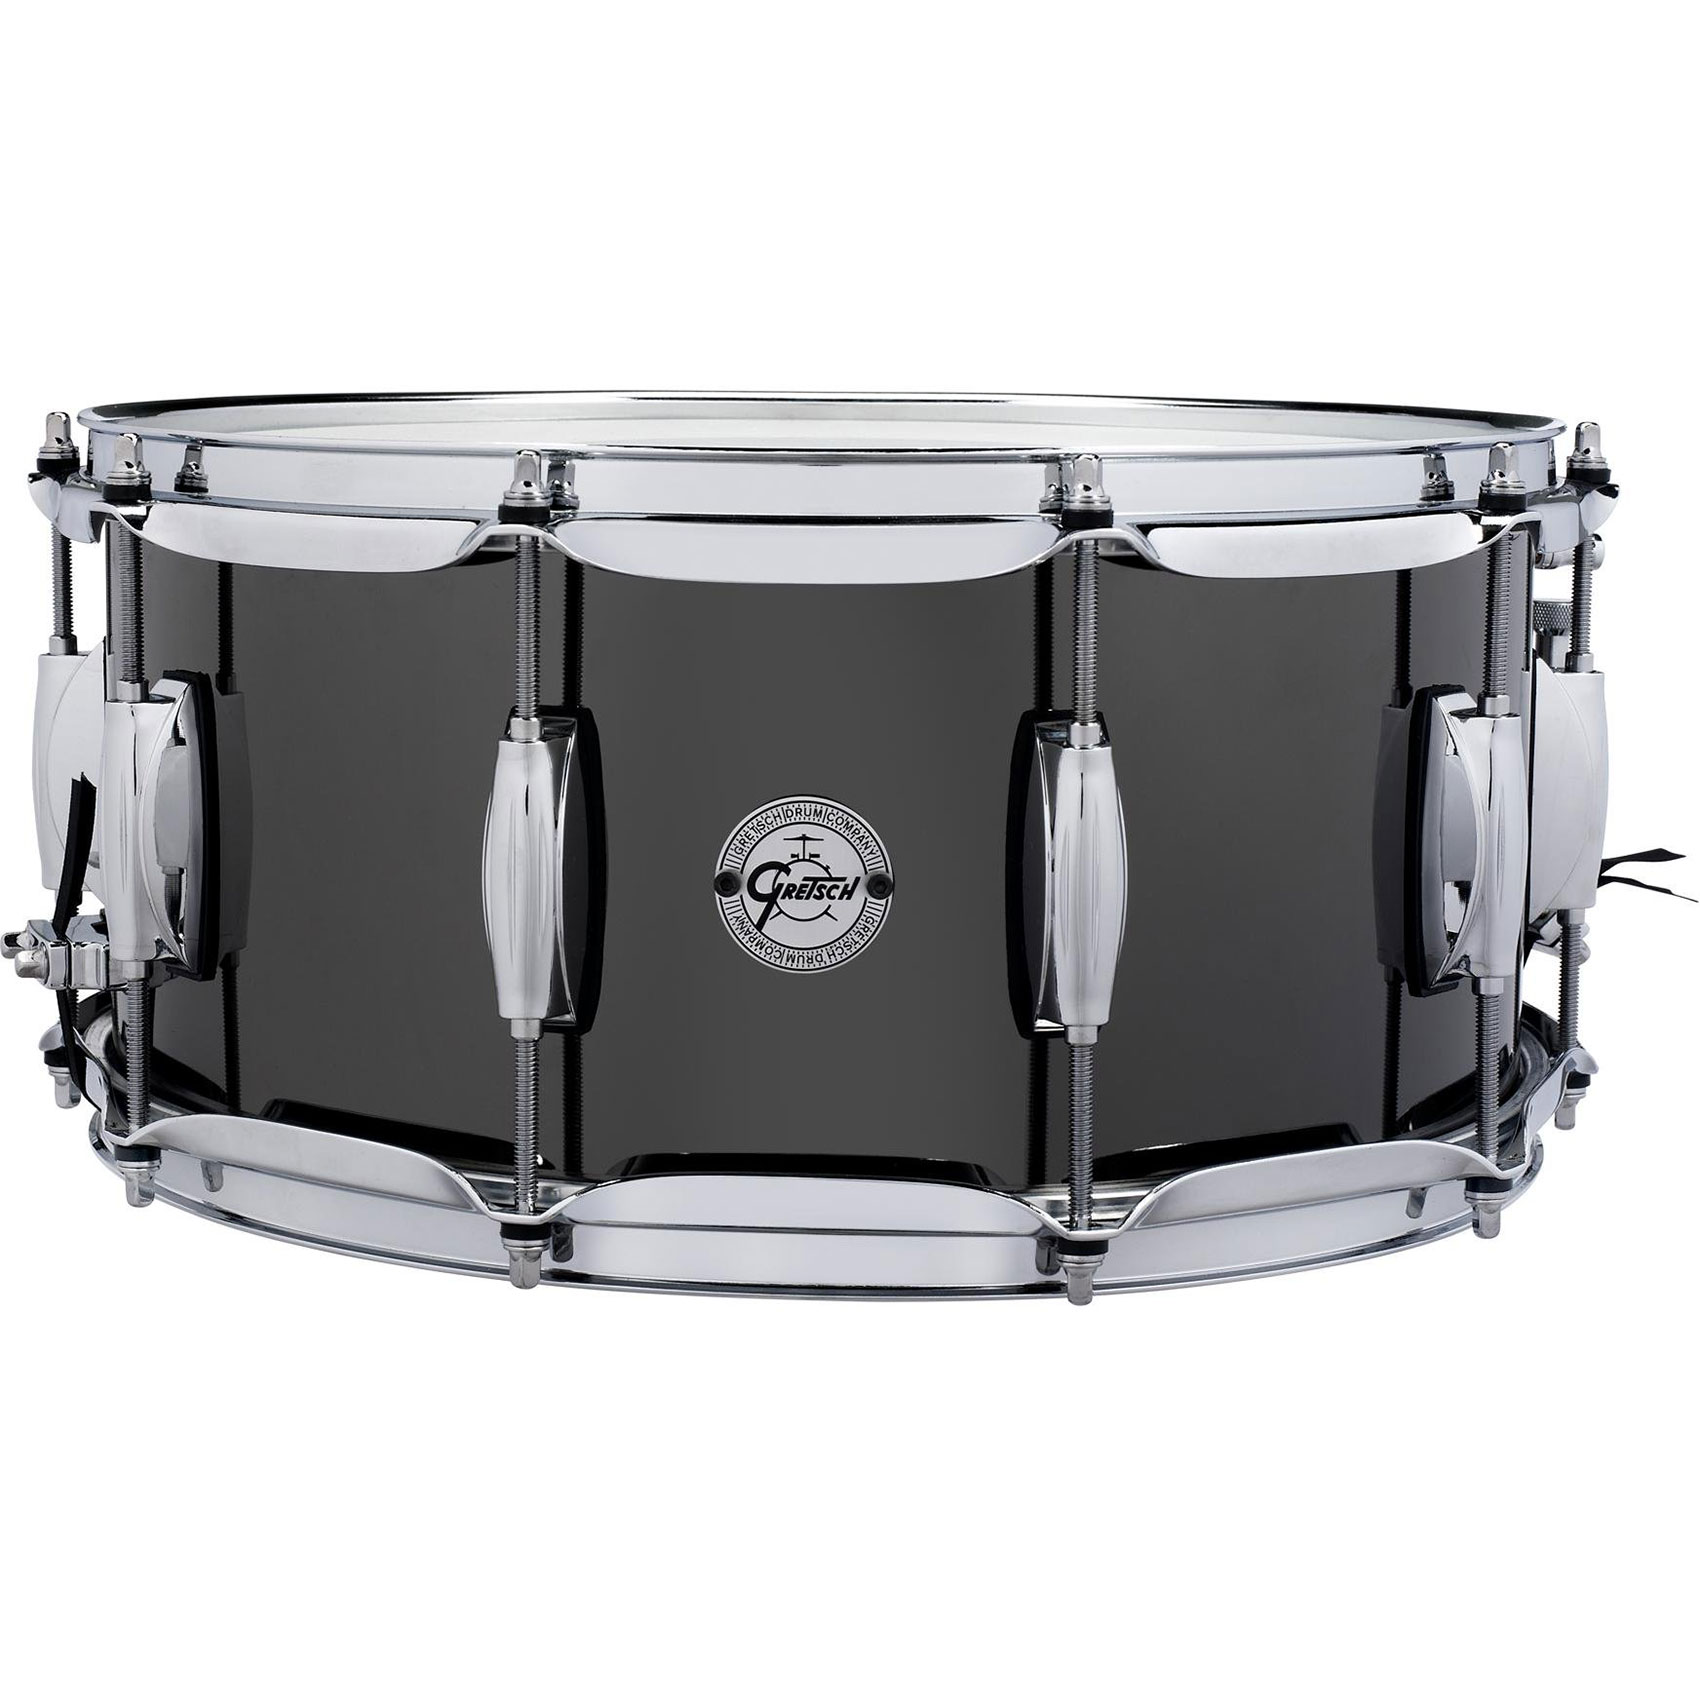 "Gretsch 6.5"" x 14"" Black Nickel over Steel Snare Drum"